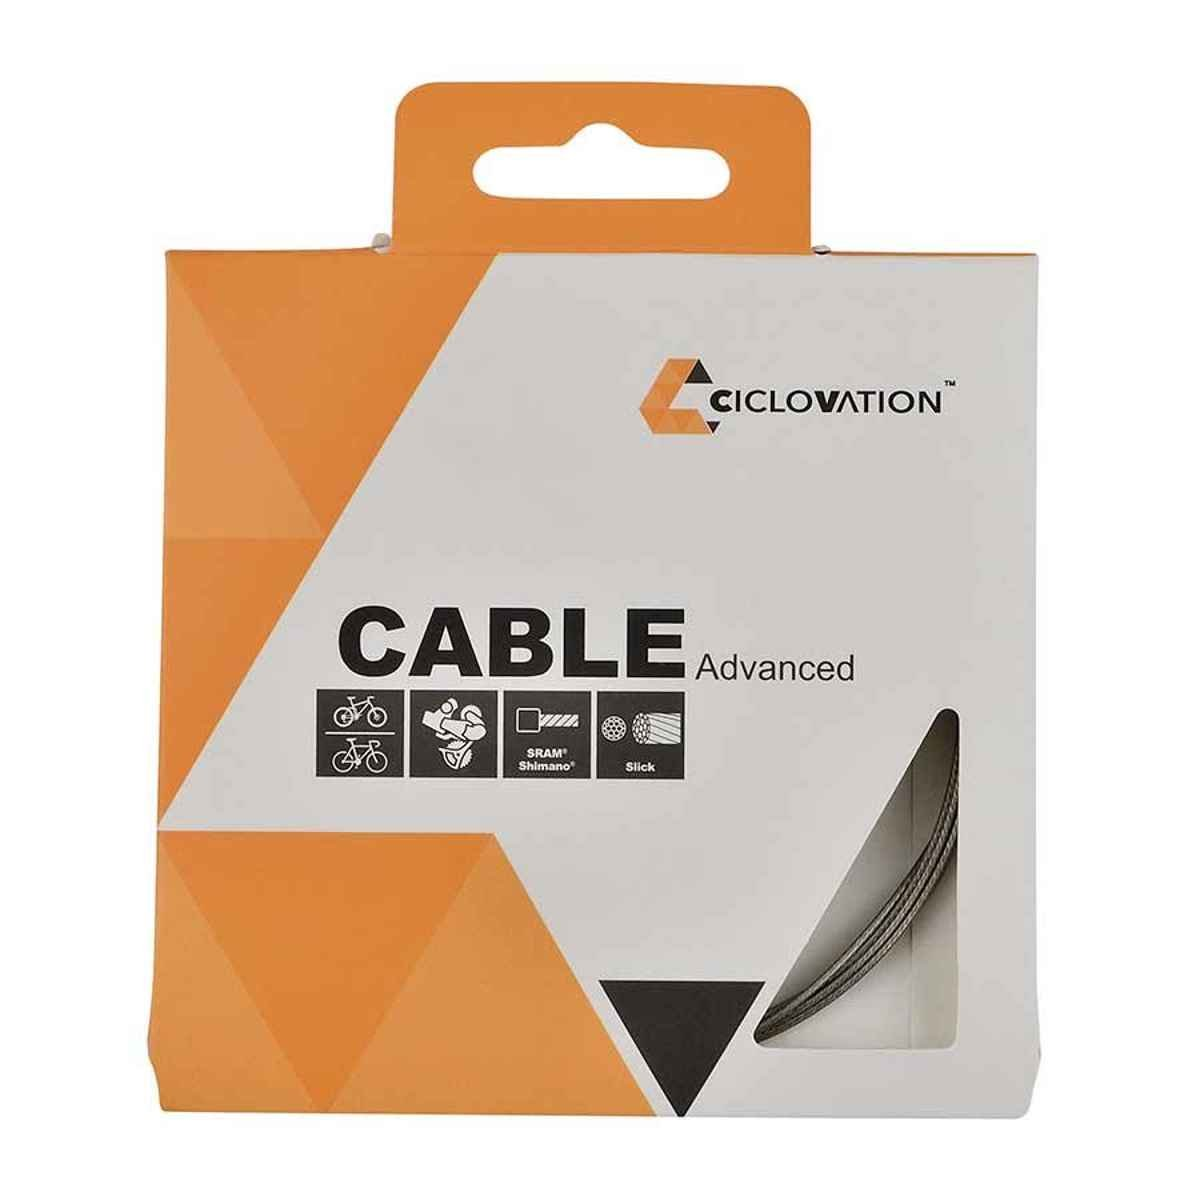 Ciclovation, Nano Slick, Shift cable, 1.1mm, Stainless Steel, Slick, 2100mm, Shimano, Box of 20